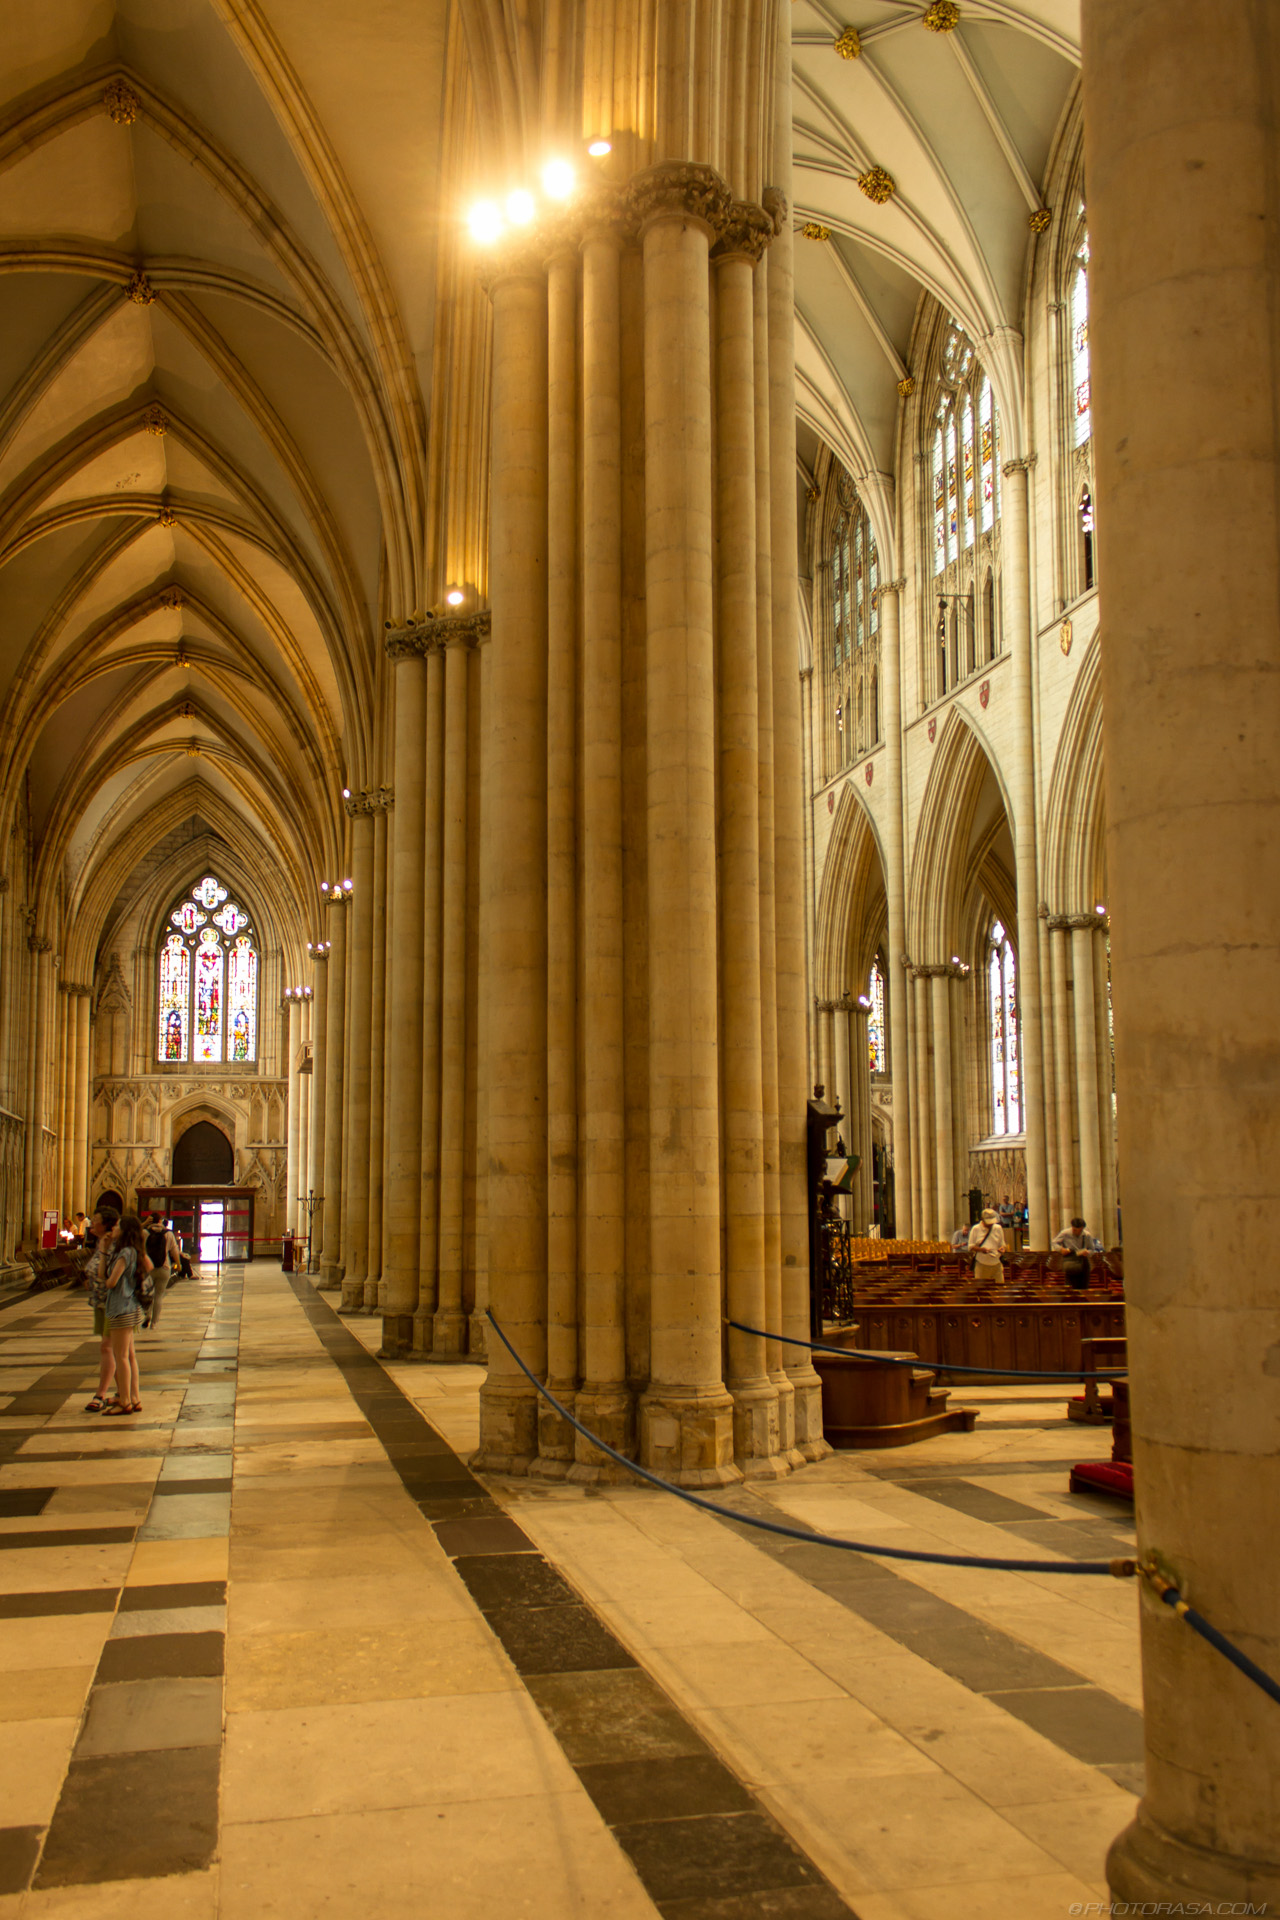 https://photorasa.com/yorkminster-cathedral/great-pillars-of-the-earth/